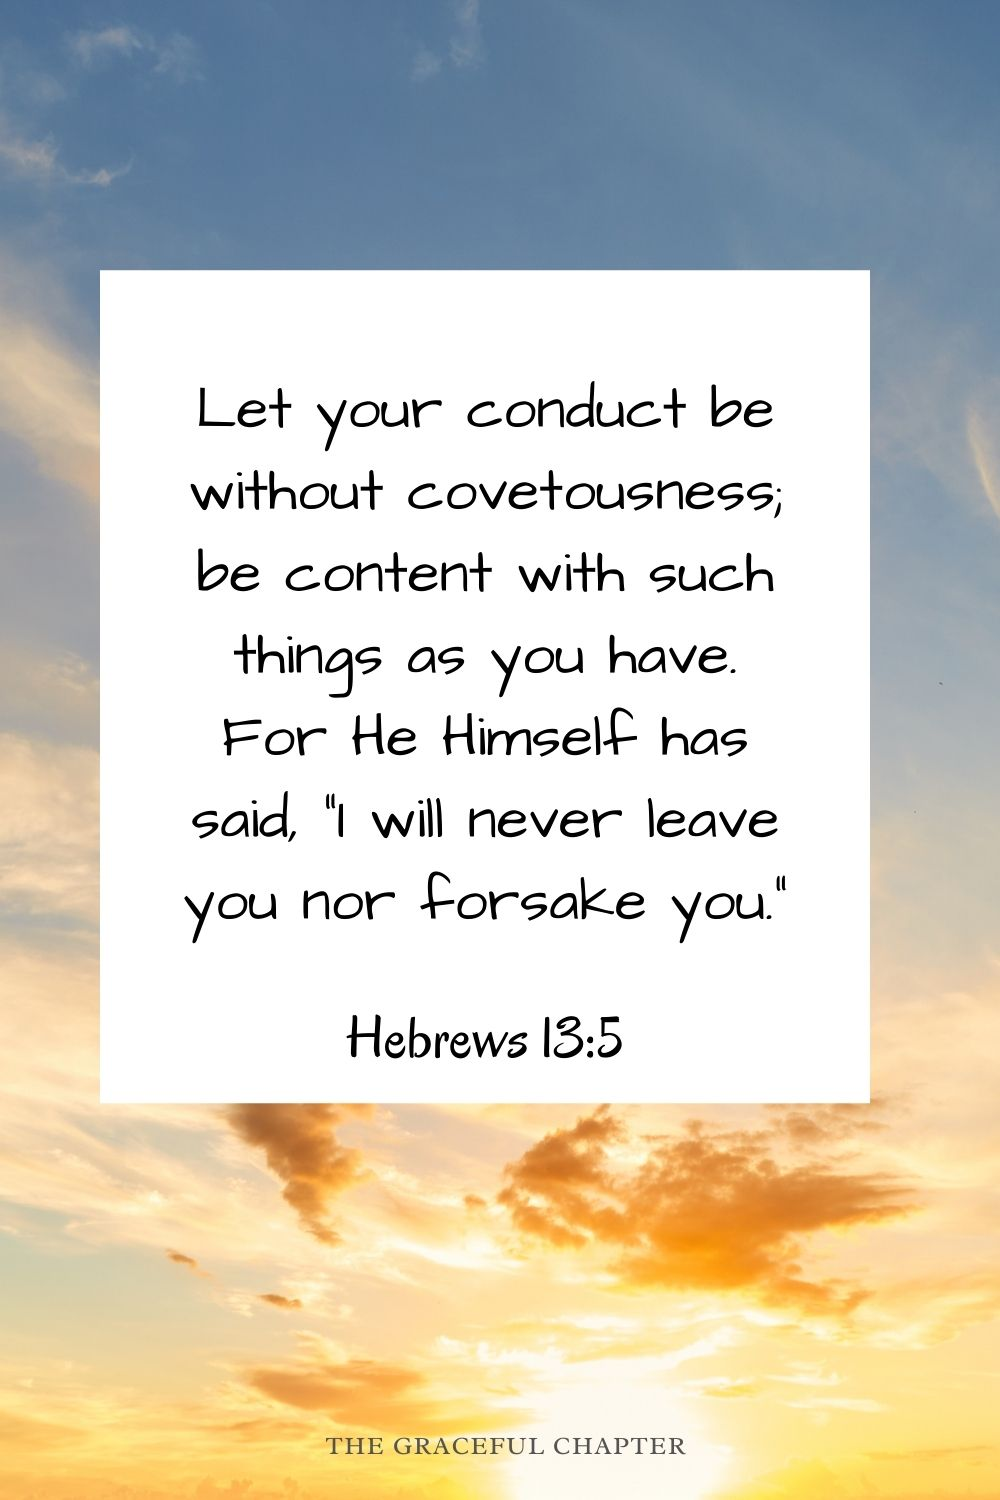 """Let your conduct be without covetousness; be content with such things as you have. For He Himself has said, """"I will never leave you nor forsake you."""" Hebrews 13:5"""